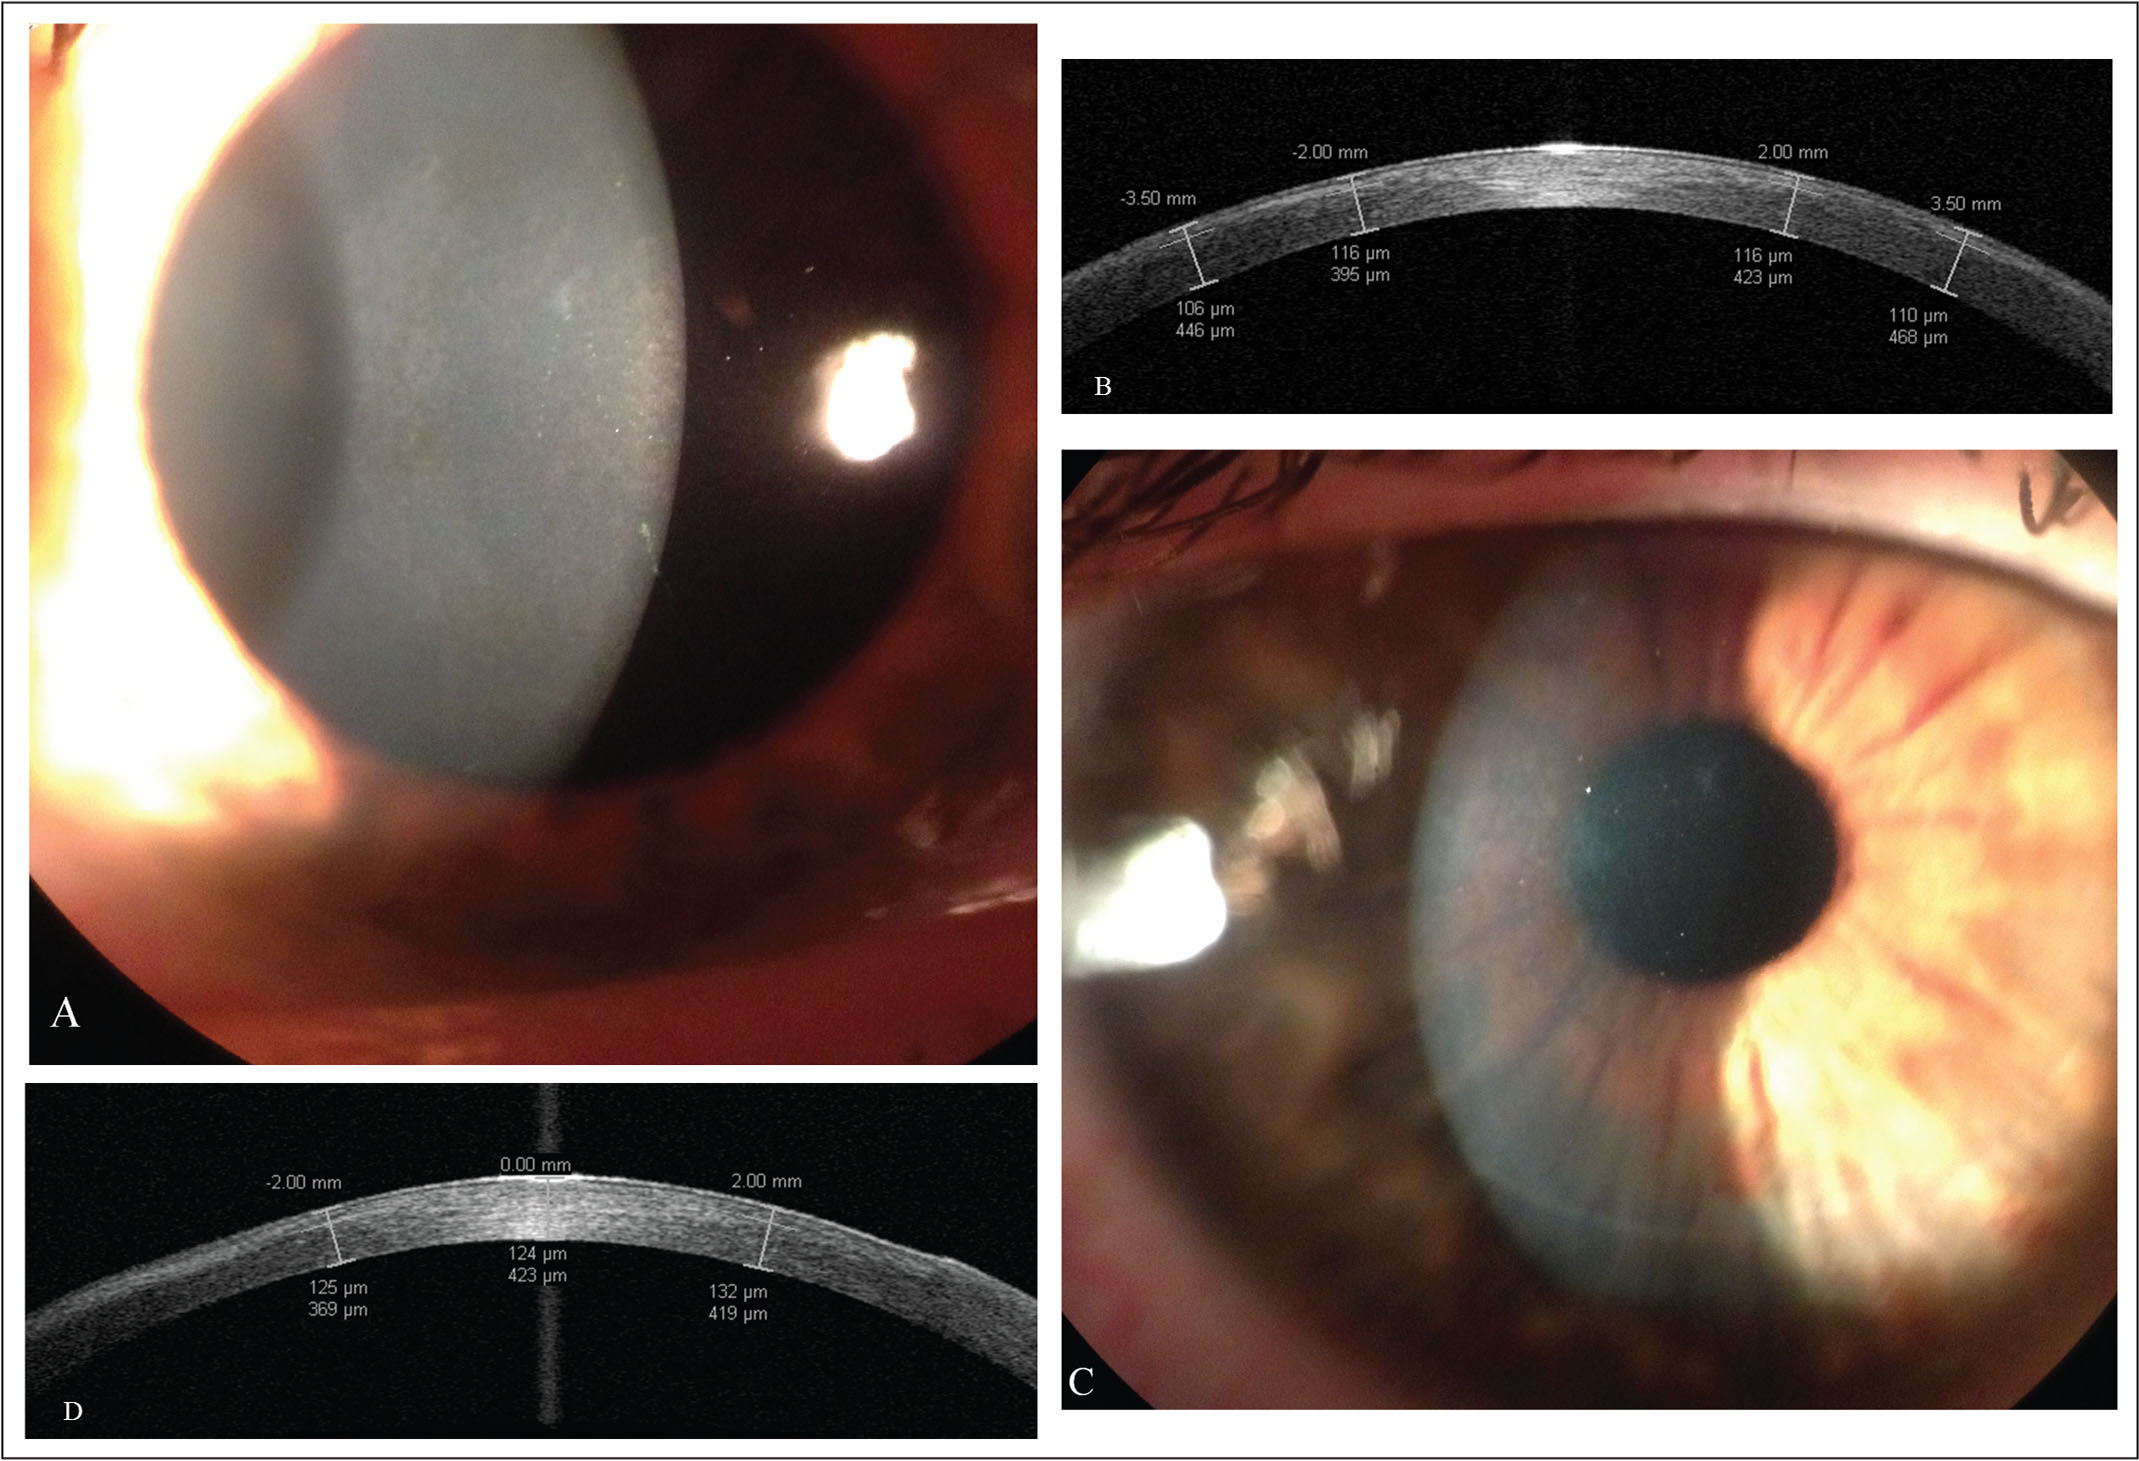 (A) Slit-lamp image of the right eye preoperatively, showing corneal stromal haze formation in a denser temporal semi-arcus. (B) High-resolution anterior segment optical coherence tomography (AS-OCT) scan of the corneal subepithelial stromal haze, demonstrating a maximum depth of 116 µm. (C) Slit-lamp image of the right eye 1 month postoperatively, showing a uniform flap and residual corneal stromal haze. (D) High-resolution AS-OCT scan of the cornea, demonstrating an uneventful corneal flap with a central depth of 124 µm and residual corneal stromal haze.